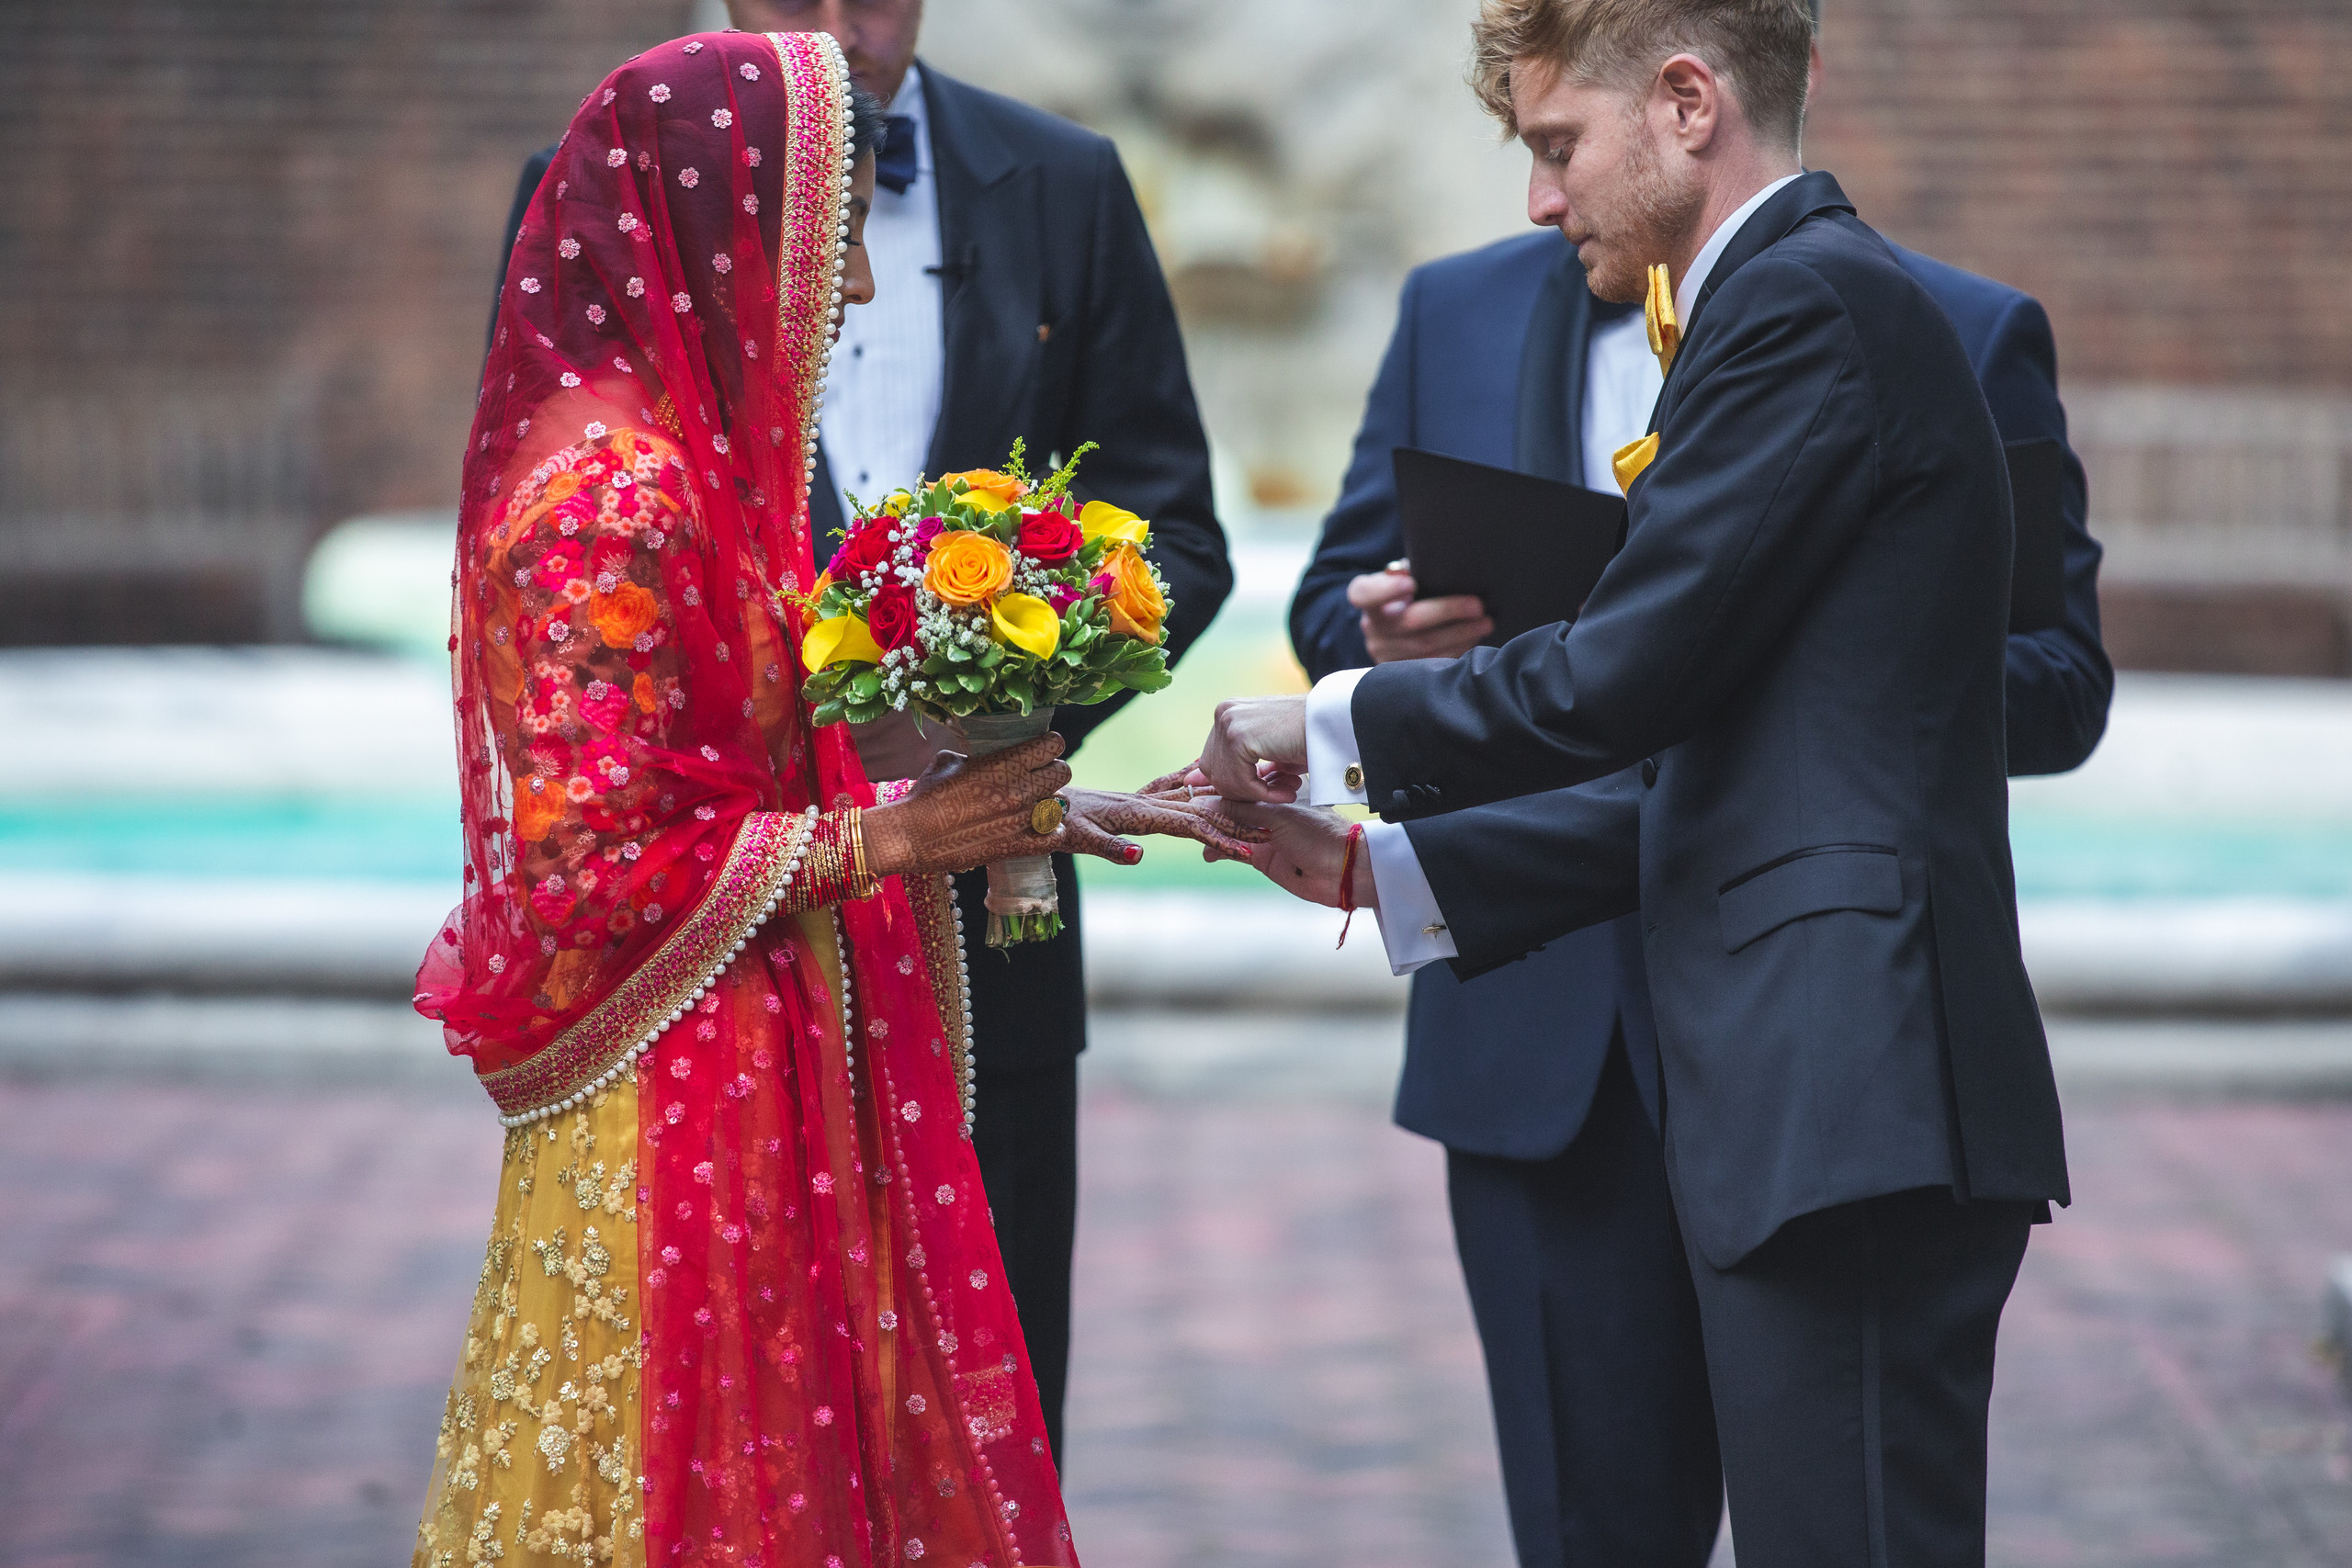 The groom places the bride's wedding band on her hand during the wedding ceremony at the Penn Museum in Philadelphia, Pennsylvania.